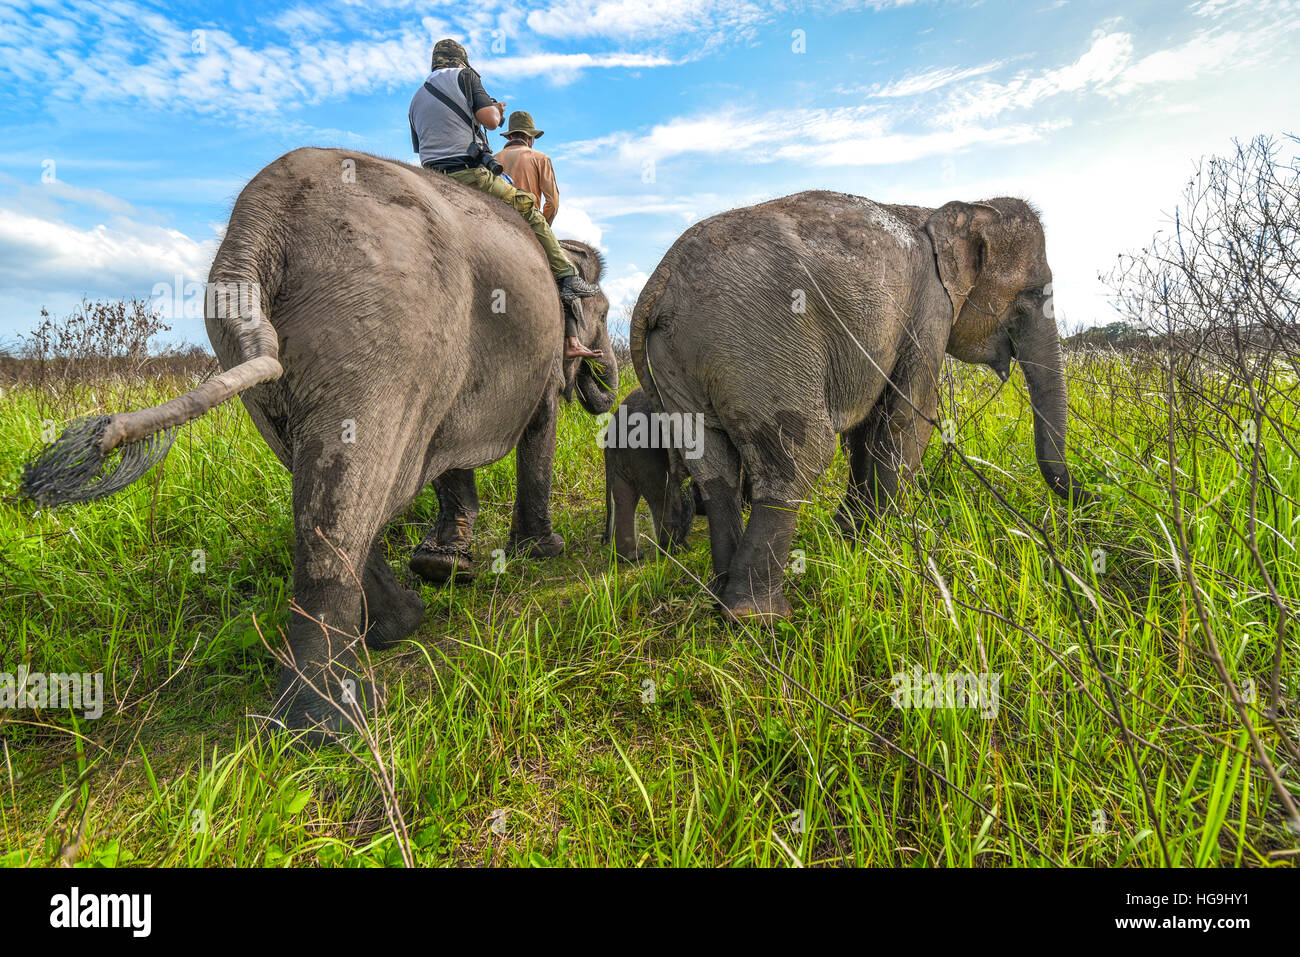 Elephant riding in Way Kambas National Park, Lampung, Sumatra, Indonesia. © Reynold Sumayku - Stock Image